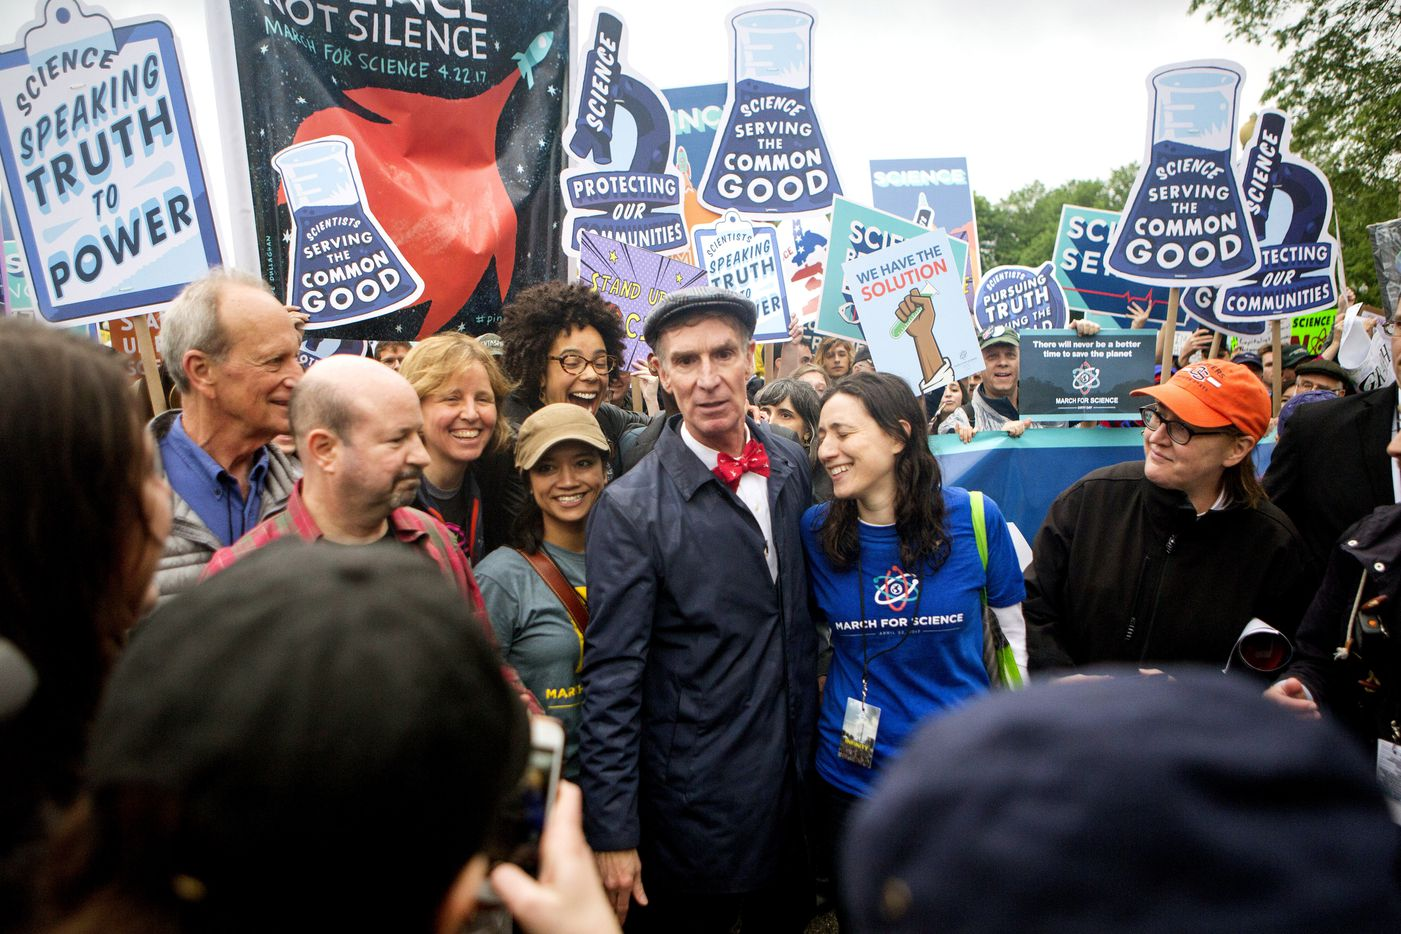 Bill Nye the Science Guy arrives to lead scientists and supporters down Constitution Avenue during the March for Science on April 22, 2017 in Washington, DC. The event is being described as a call to support and safeguard the scientific community.  (Jessica Kourkounis/Getty Images)